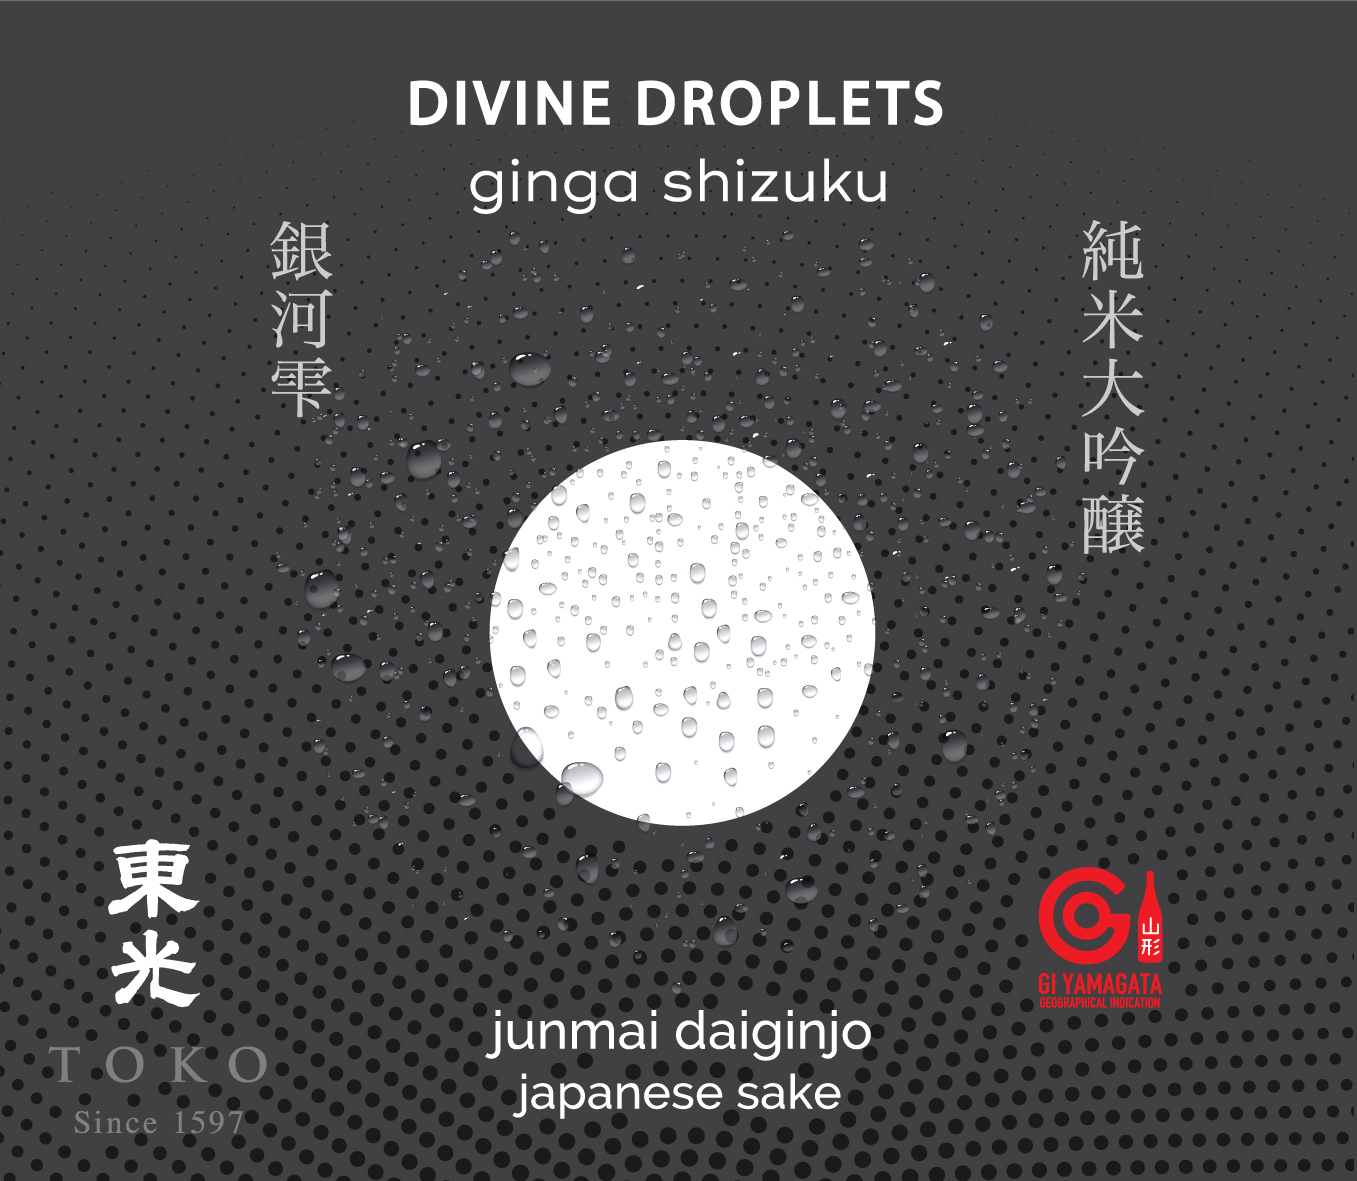 N.V. Toko Sake Devine Droplets Junmai Daiginjo 720 ml